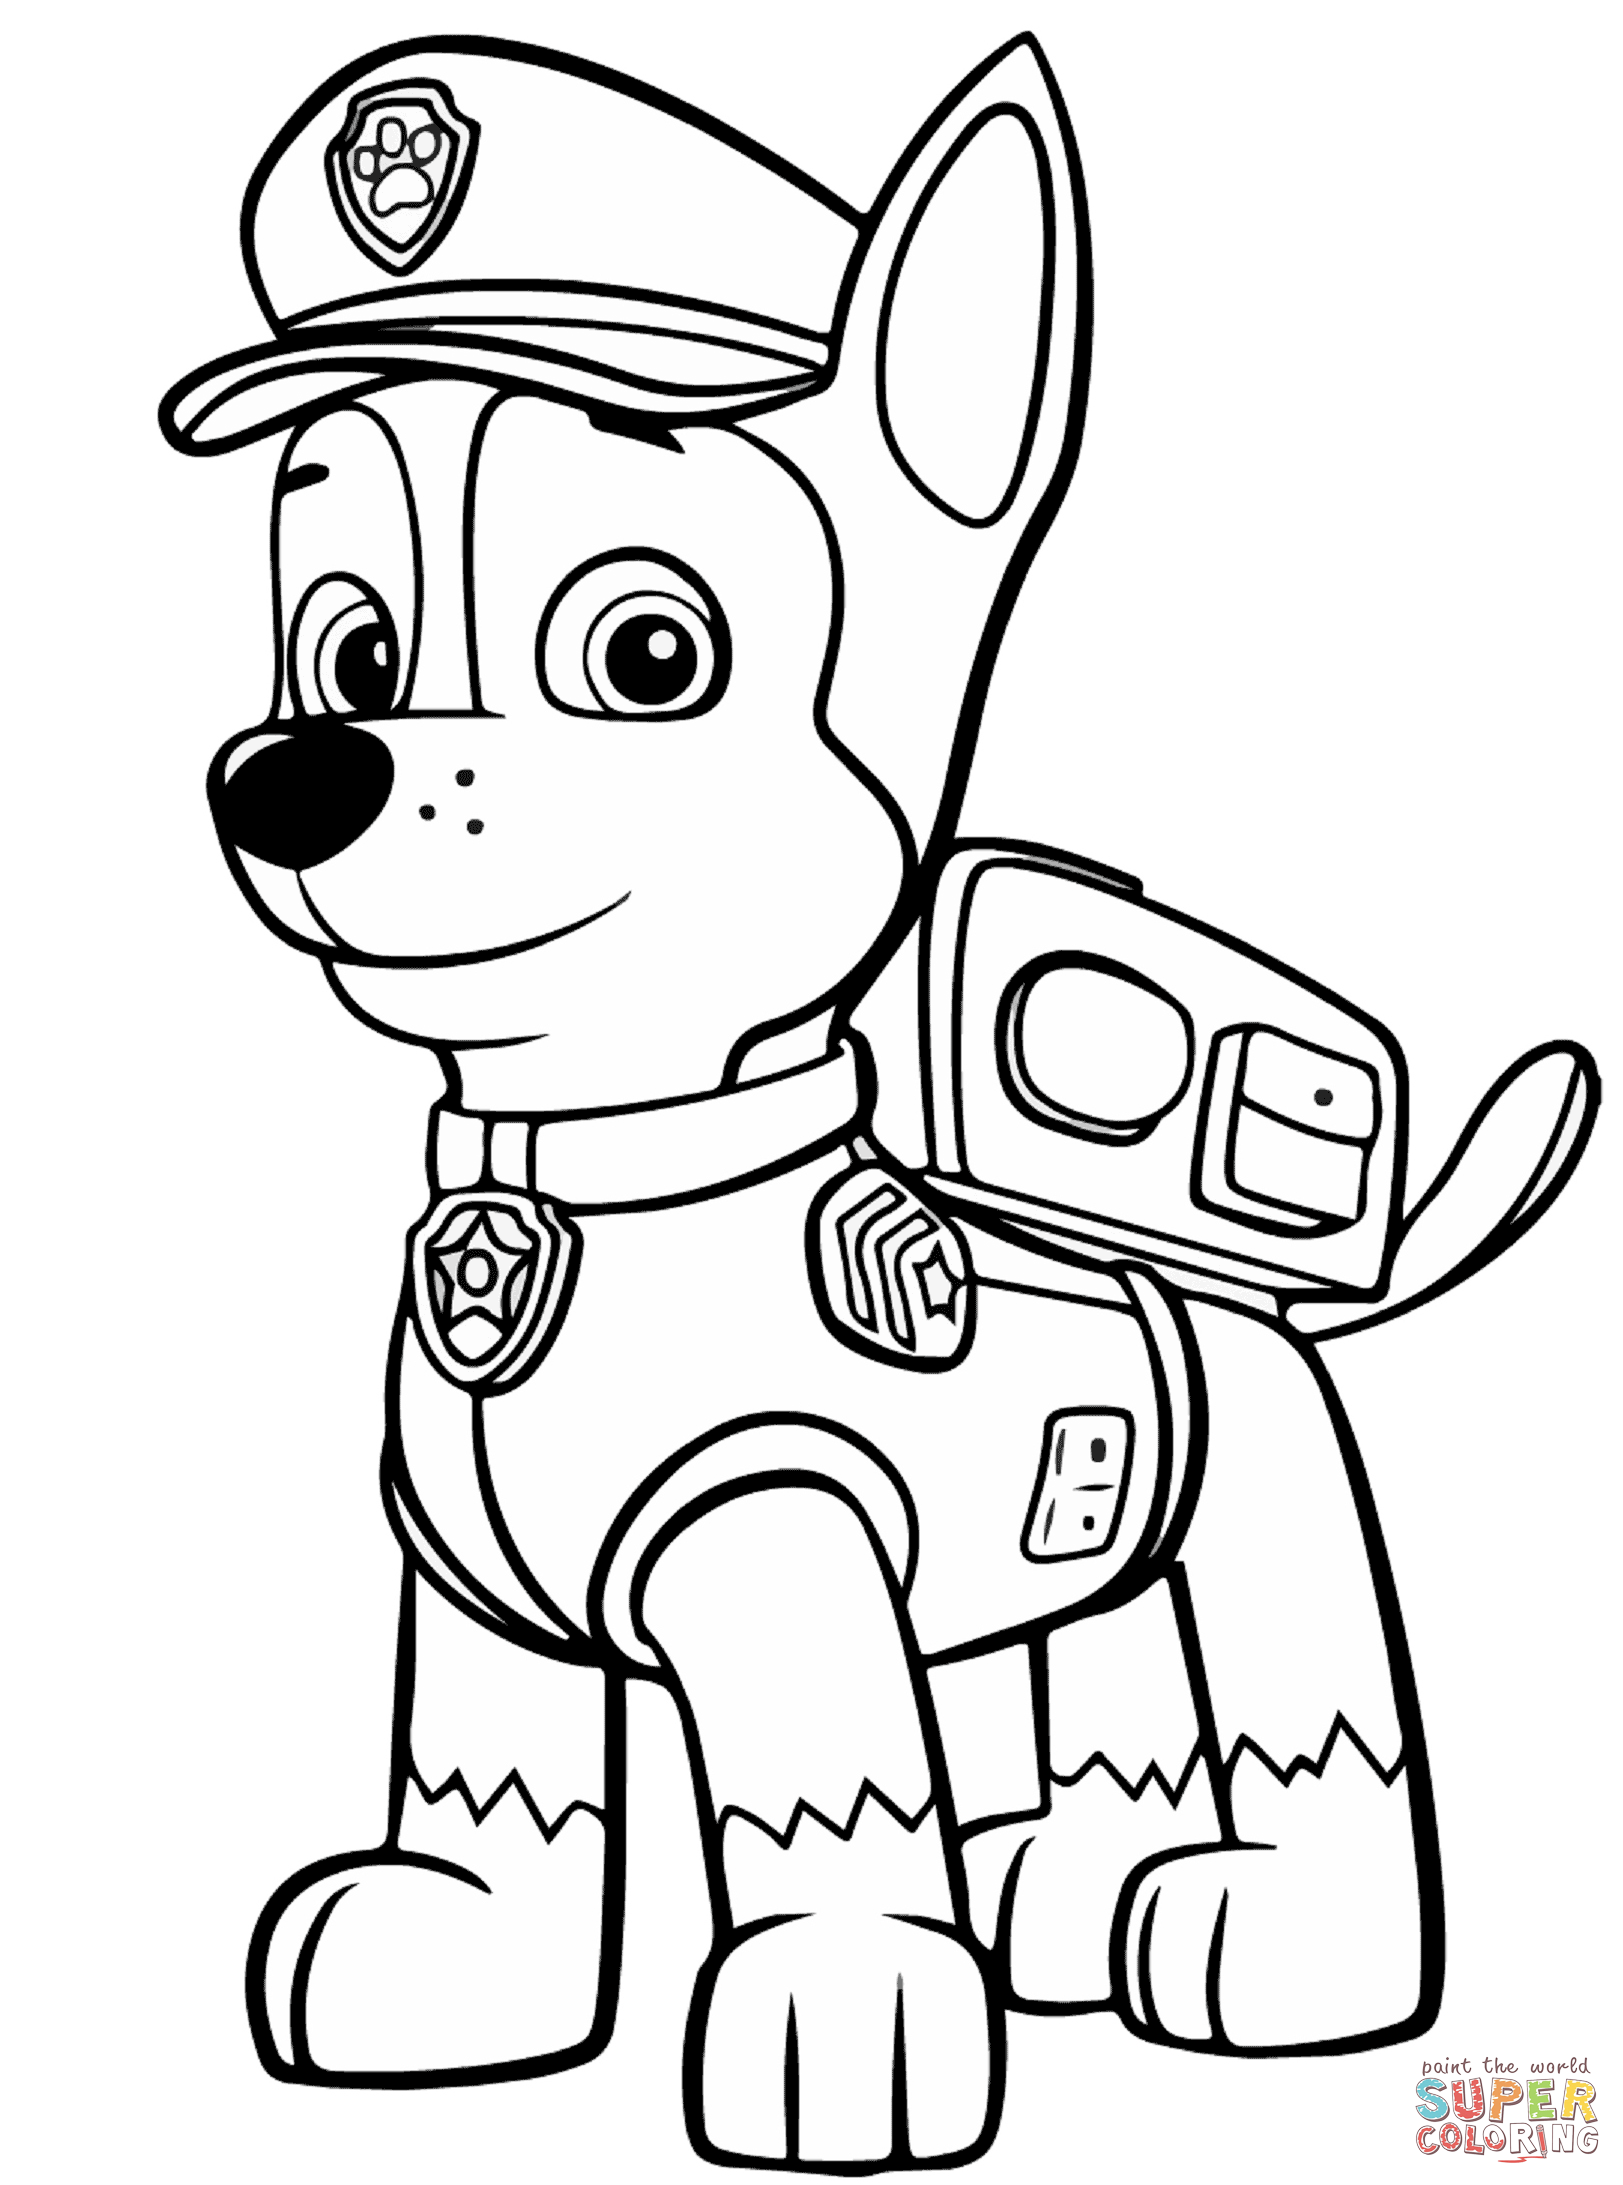 Paw patrol coloring pages, Paw patrol coloring, Chase paw ...